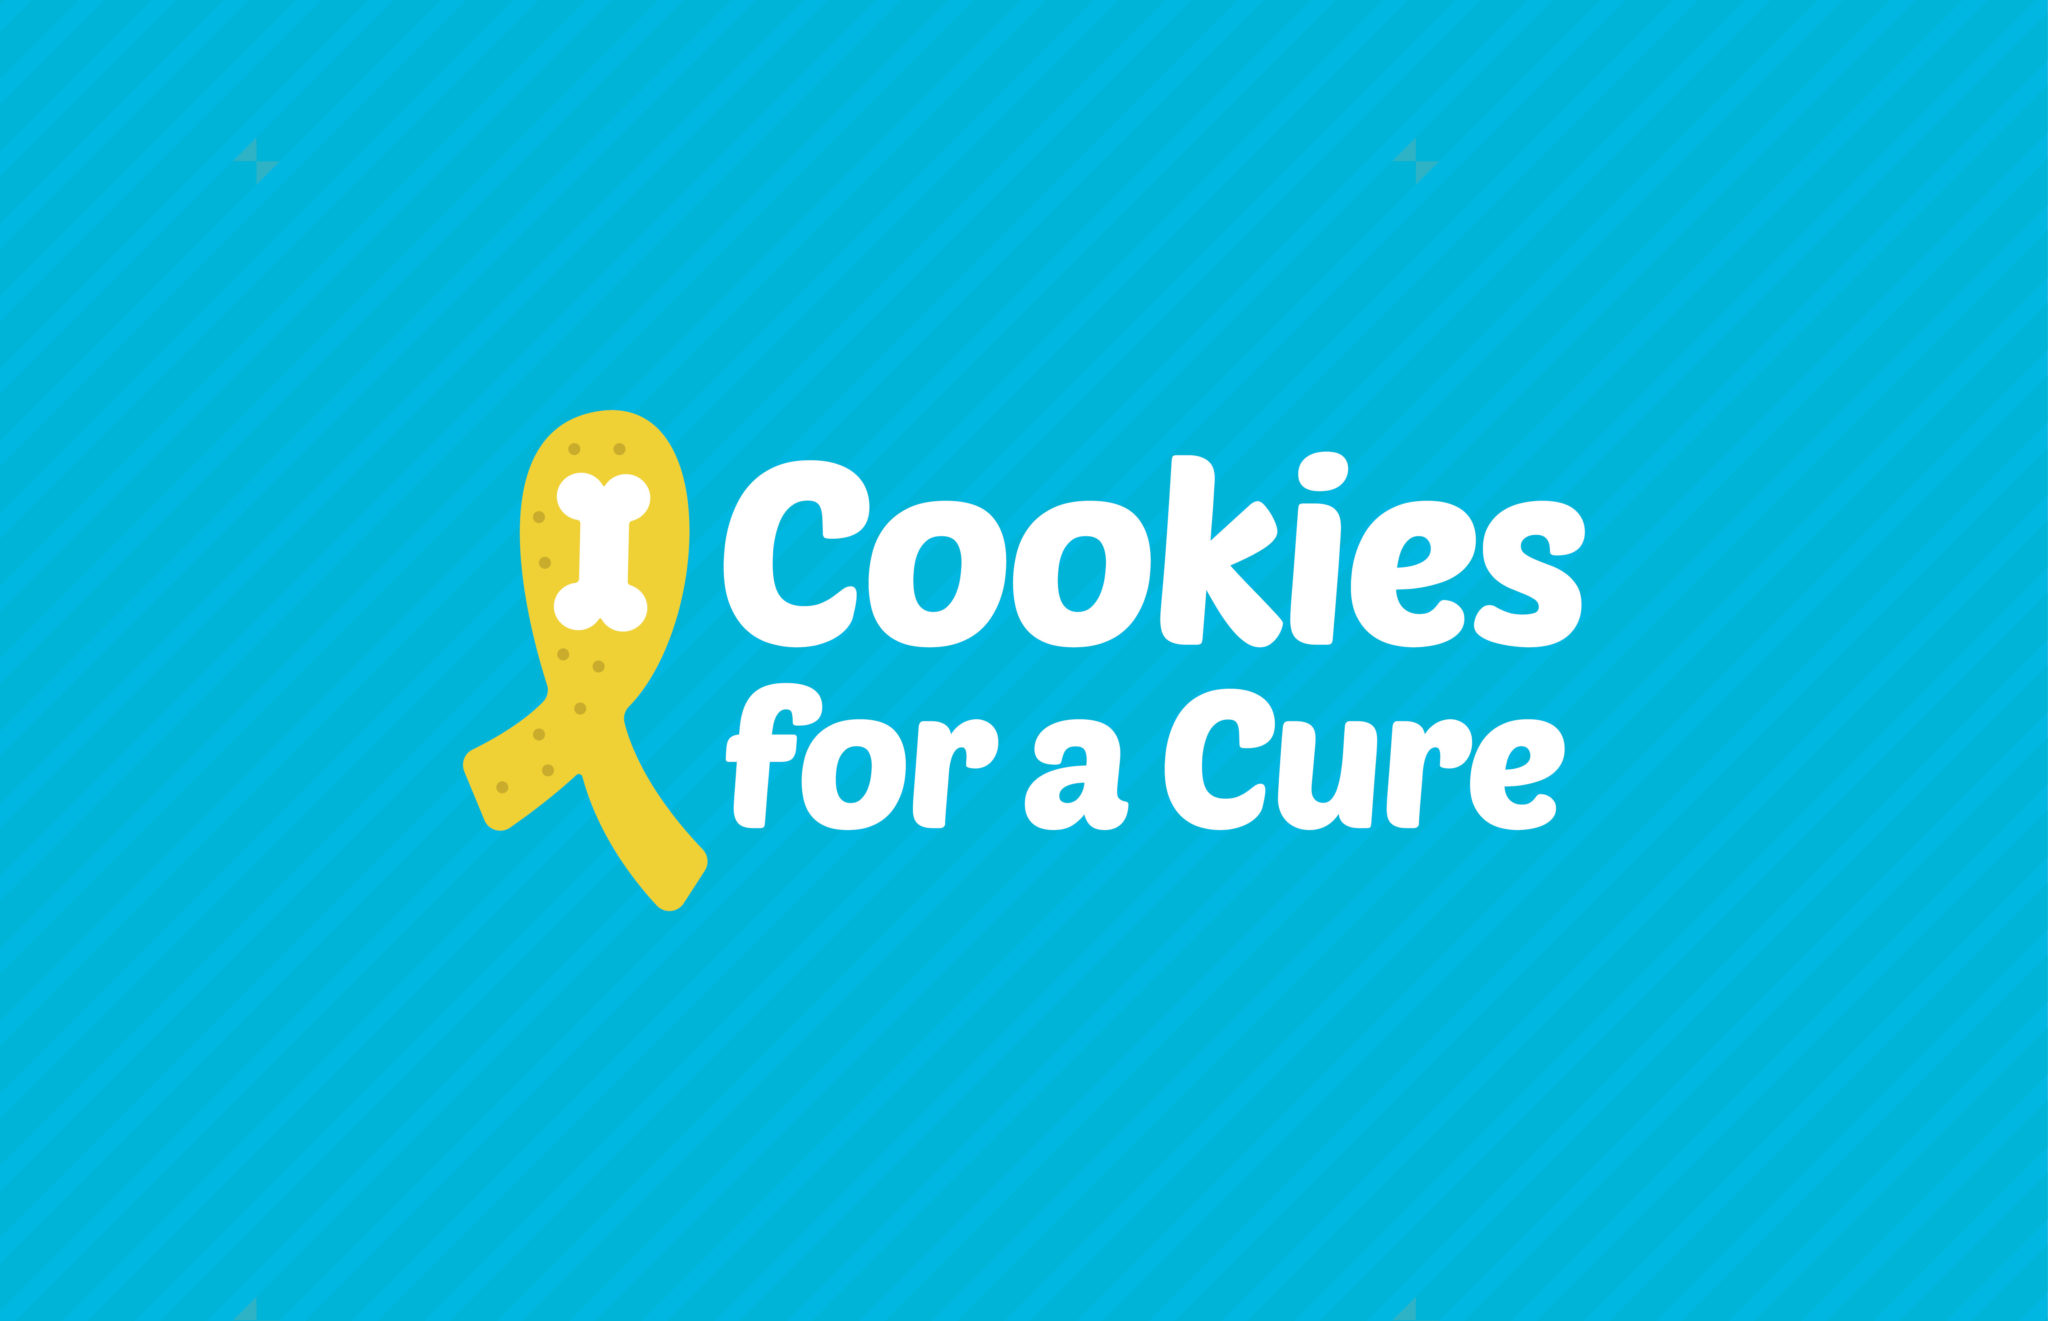 Cookies For A Cure logo, designed by Dox Design